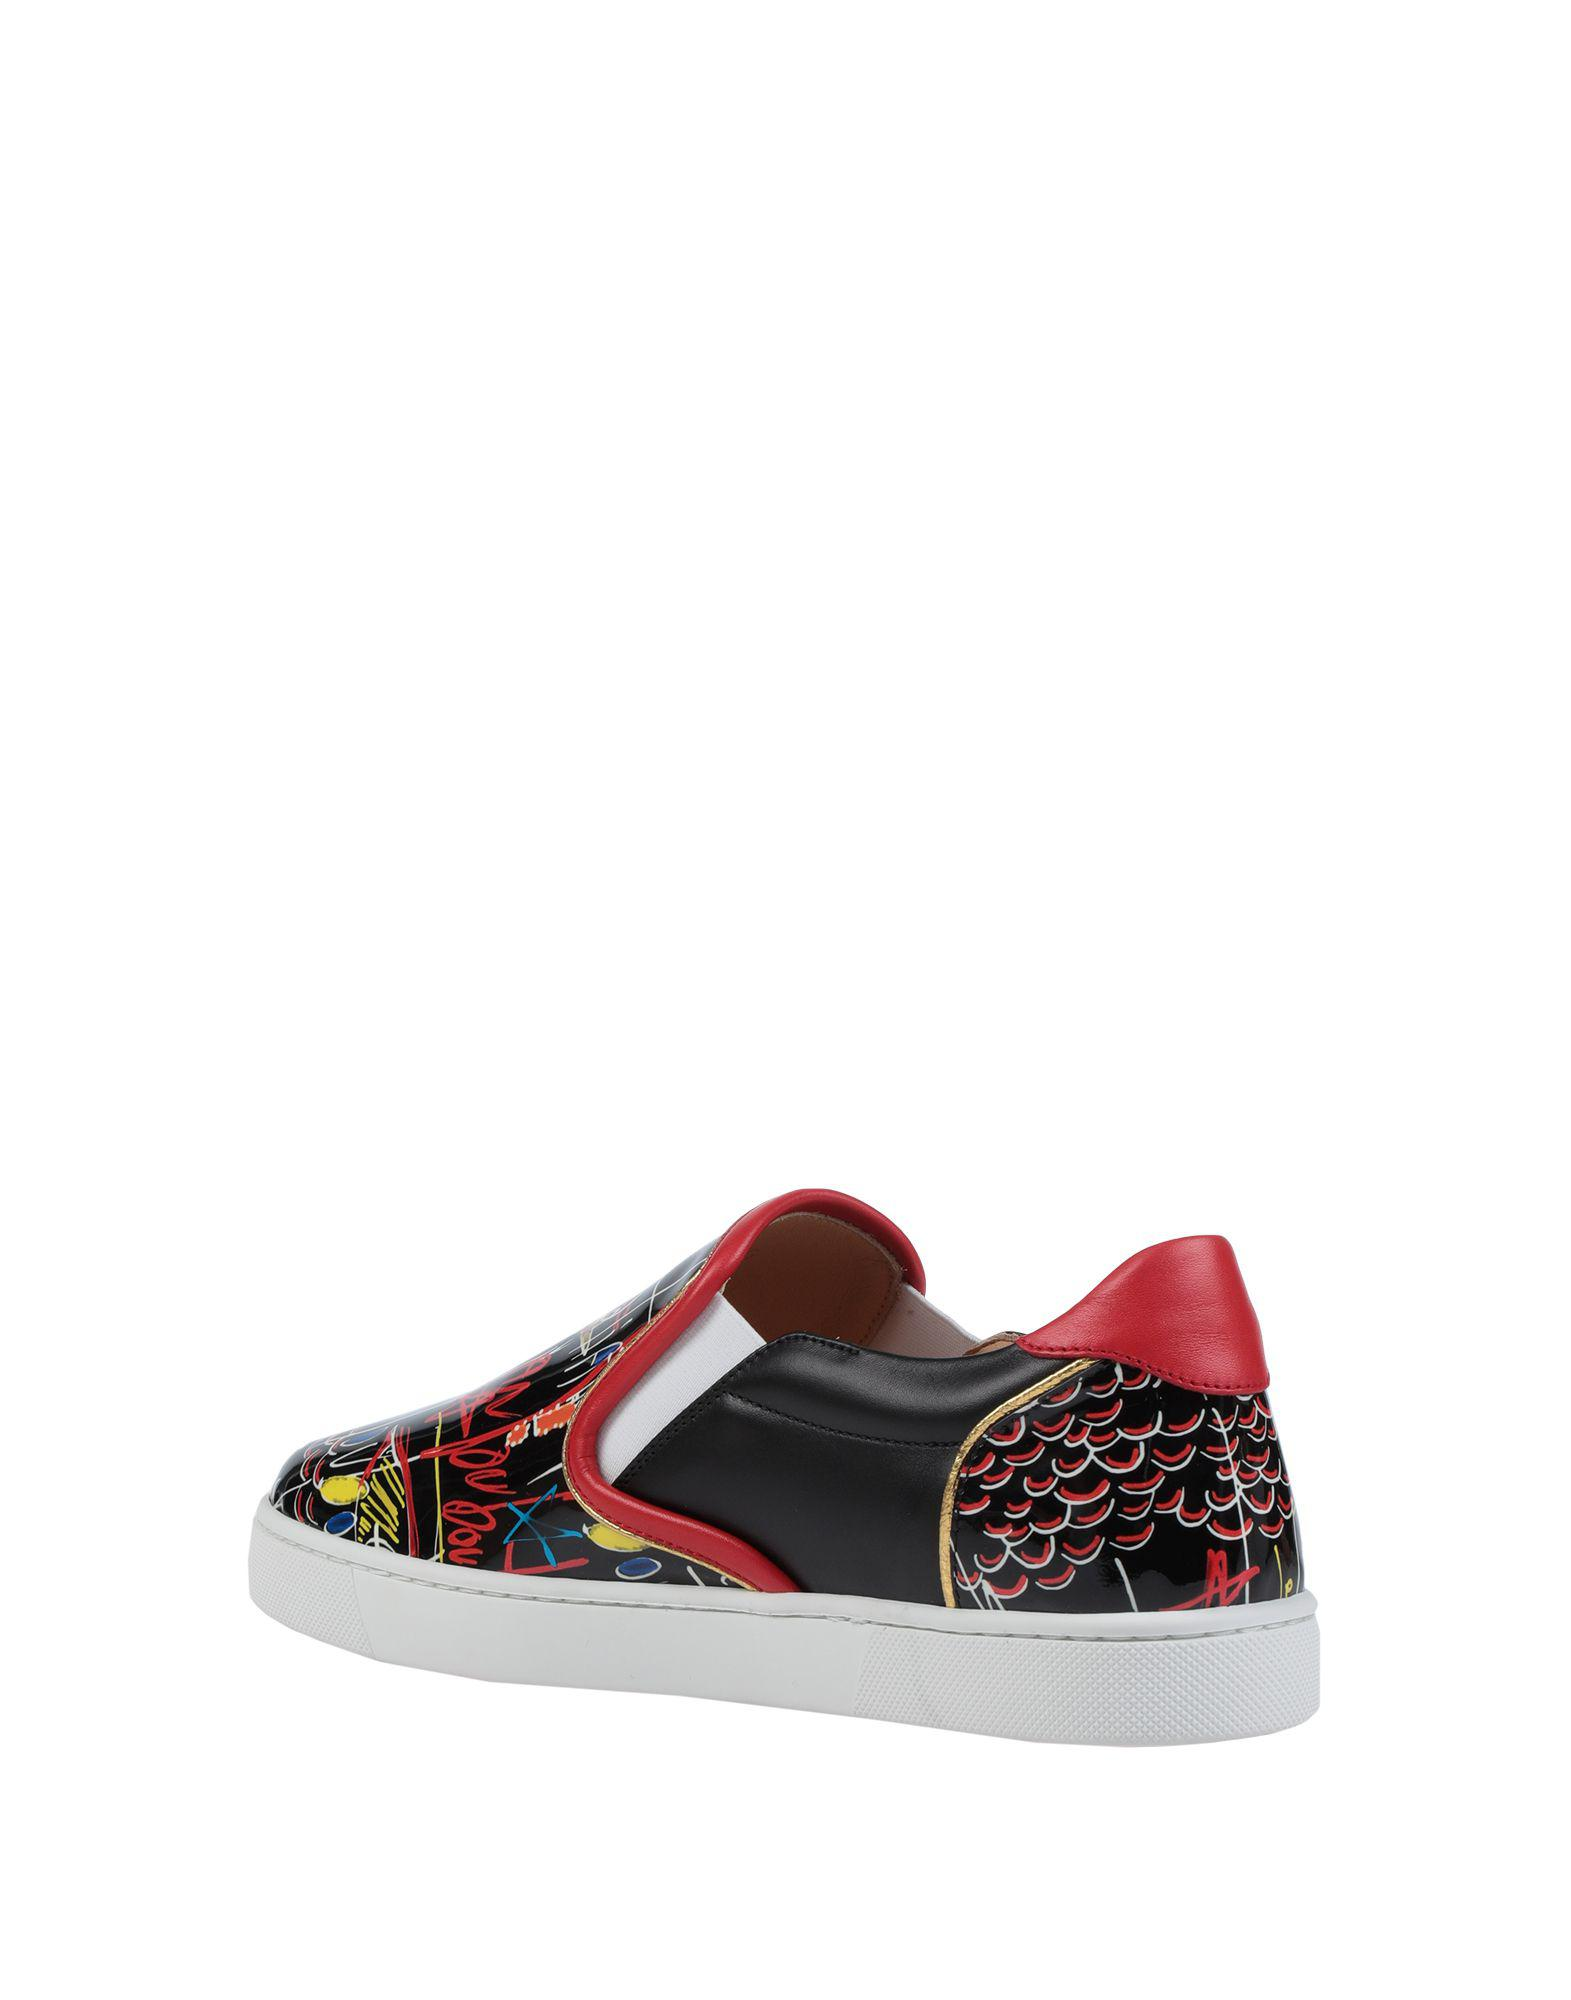 60a165d95f9 Lyst - Christian Louboutin Low-tops   Sneakers in Black